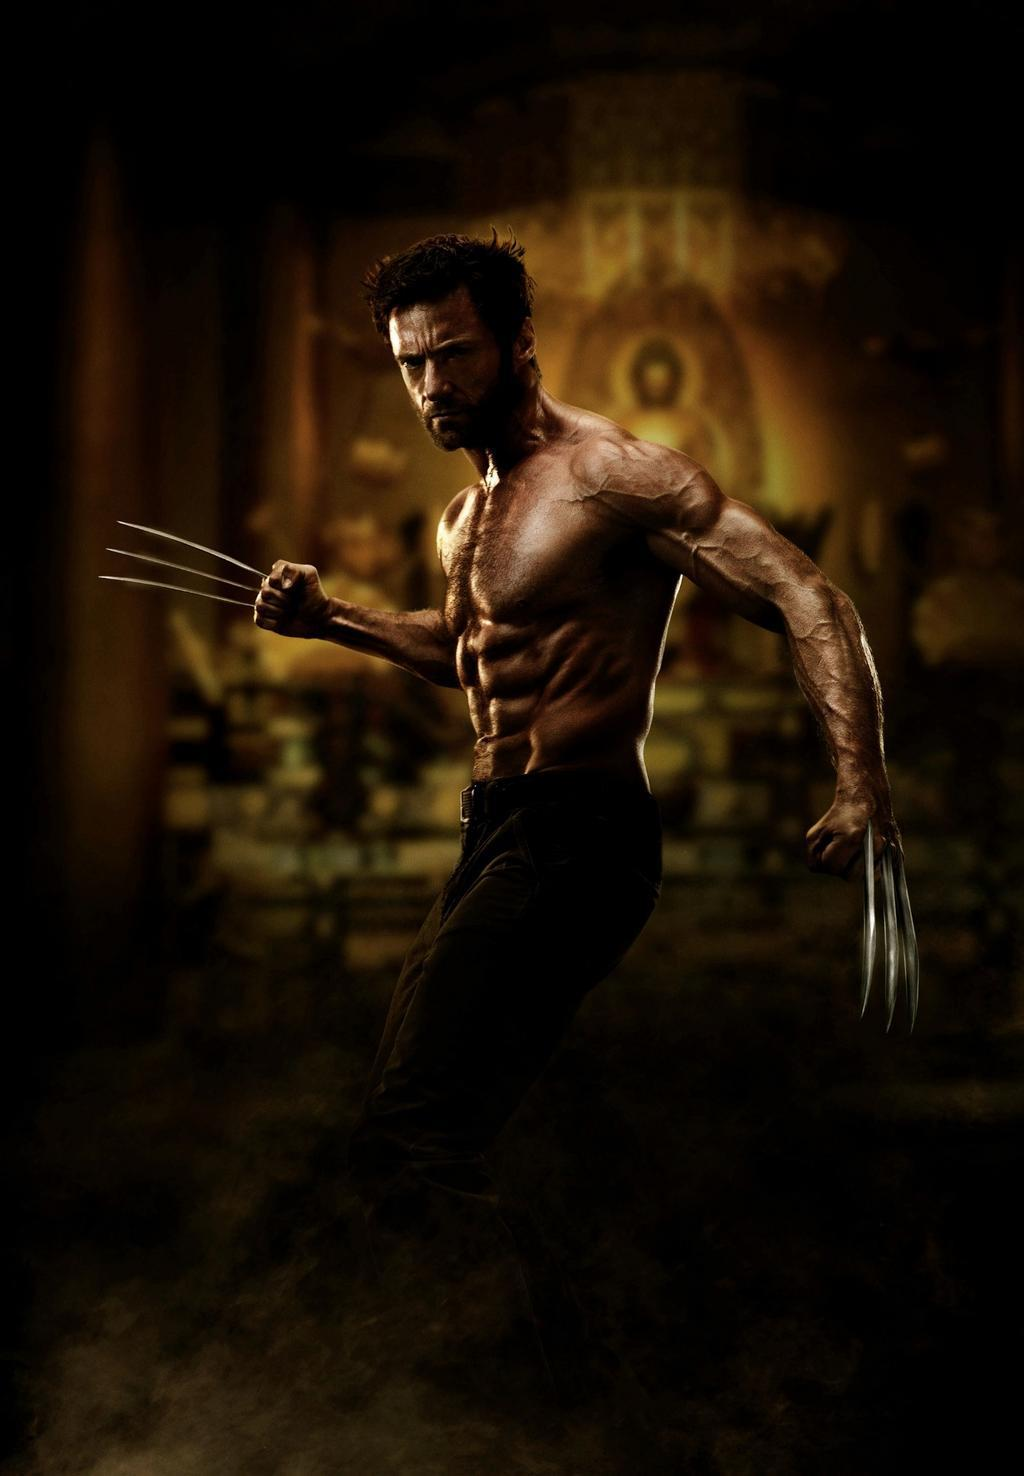 191416 518092604873273 212198147 o(1) - First Image of The Wolverine Released